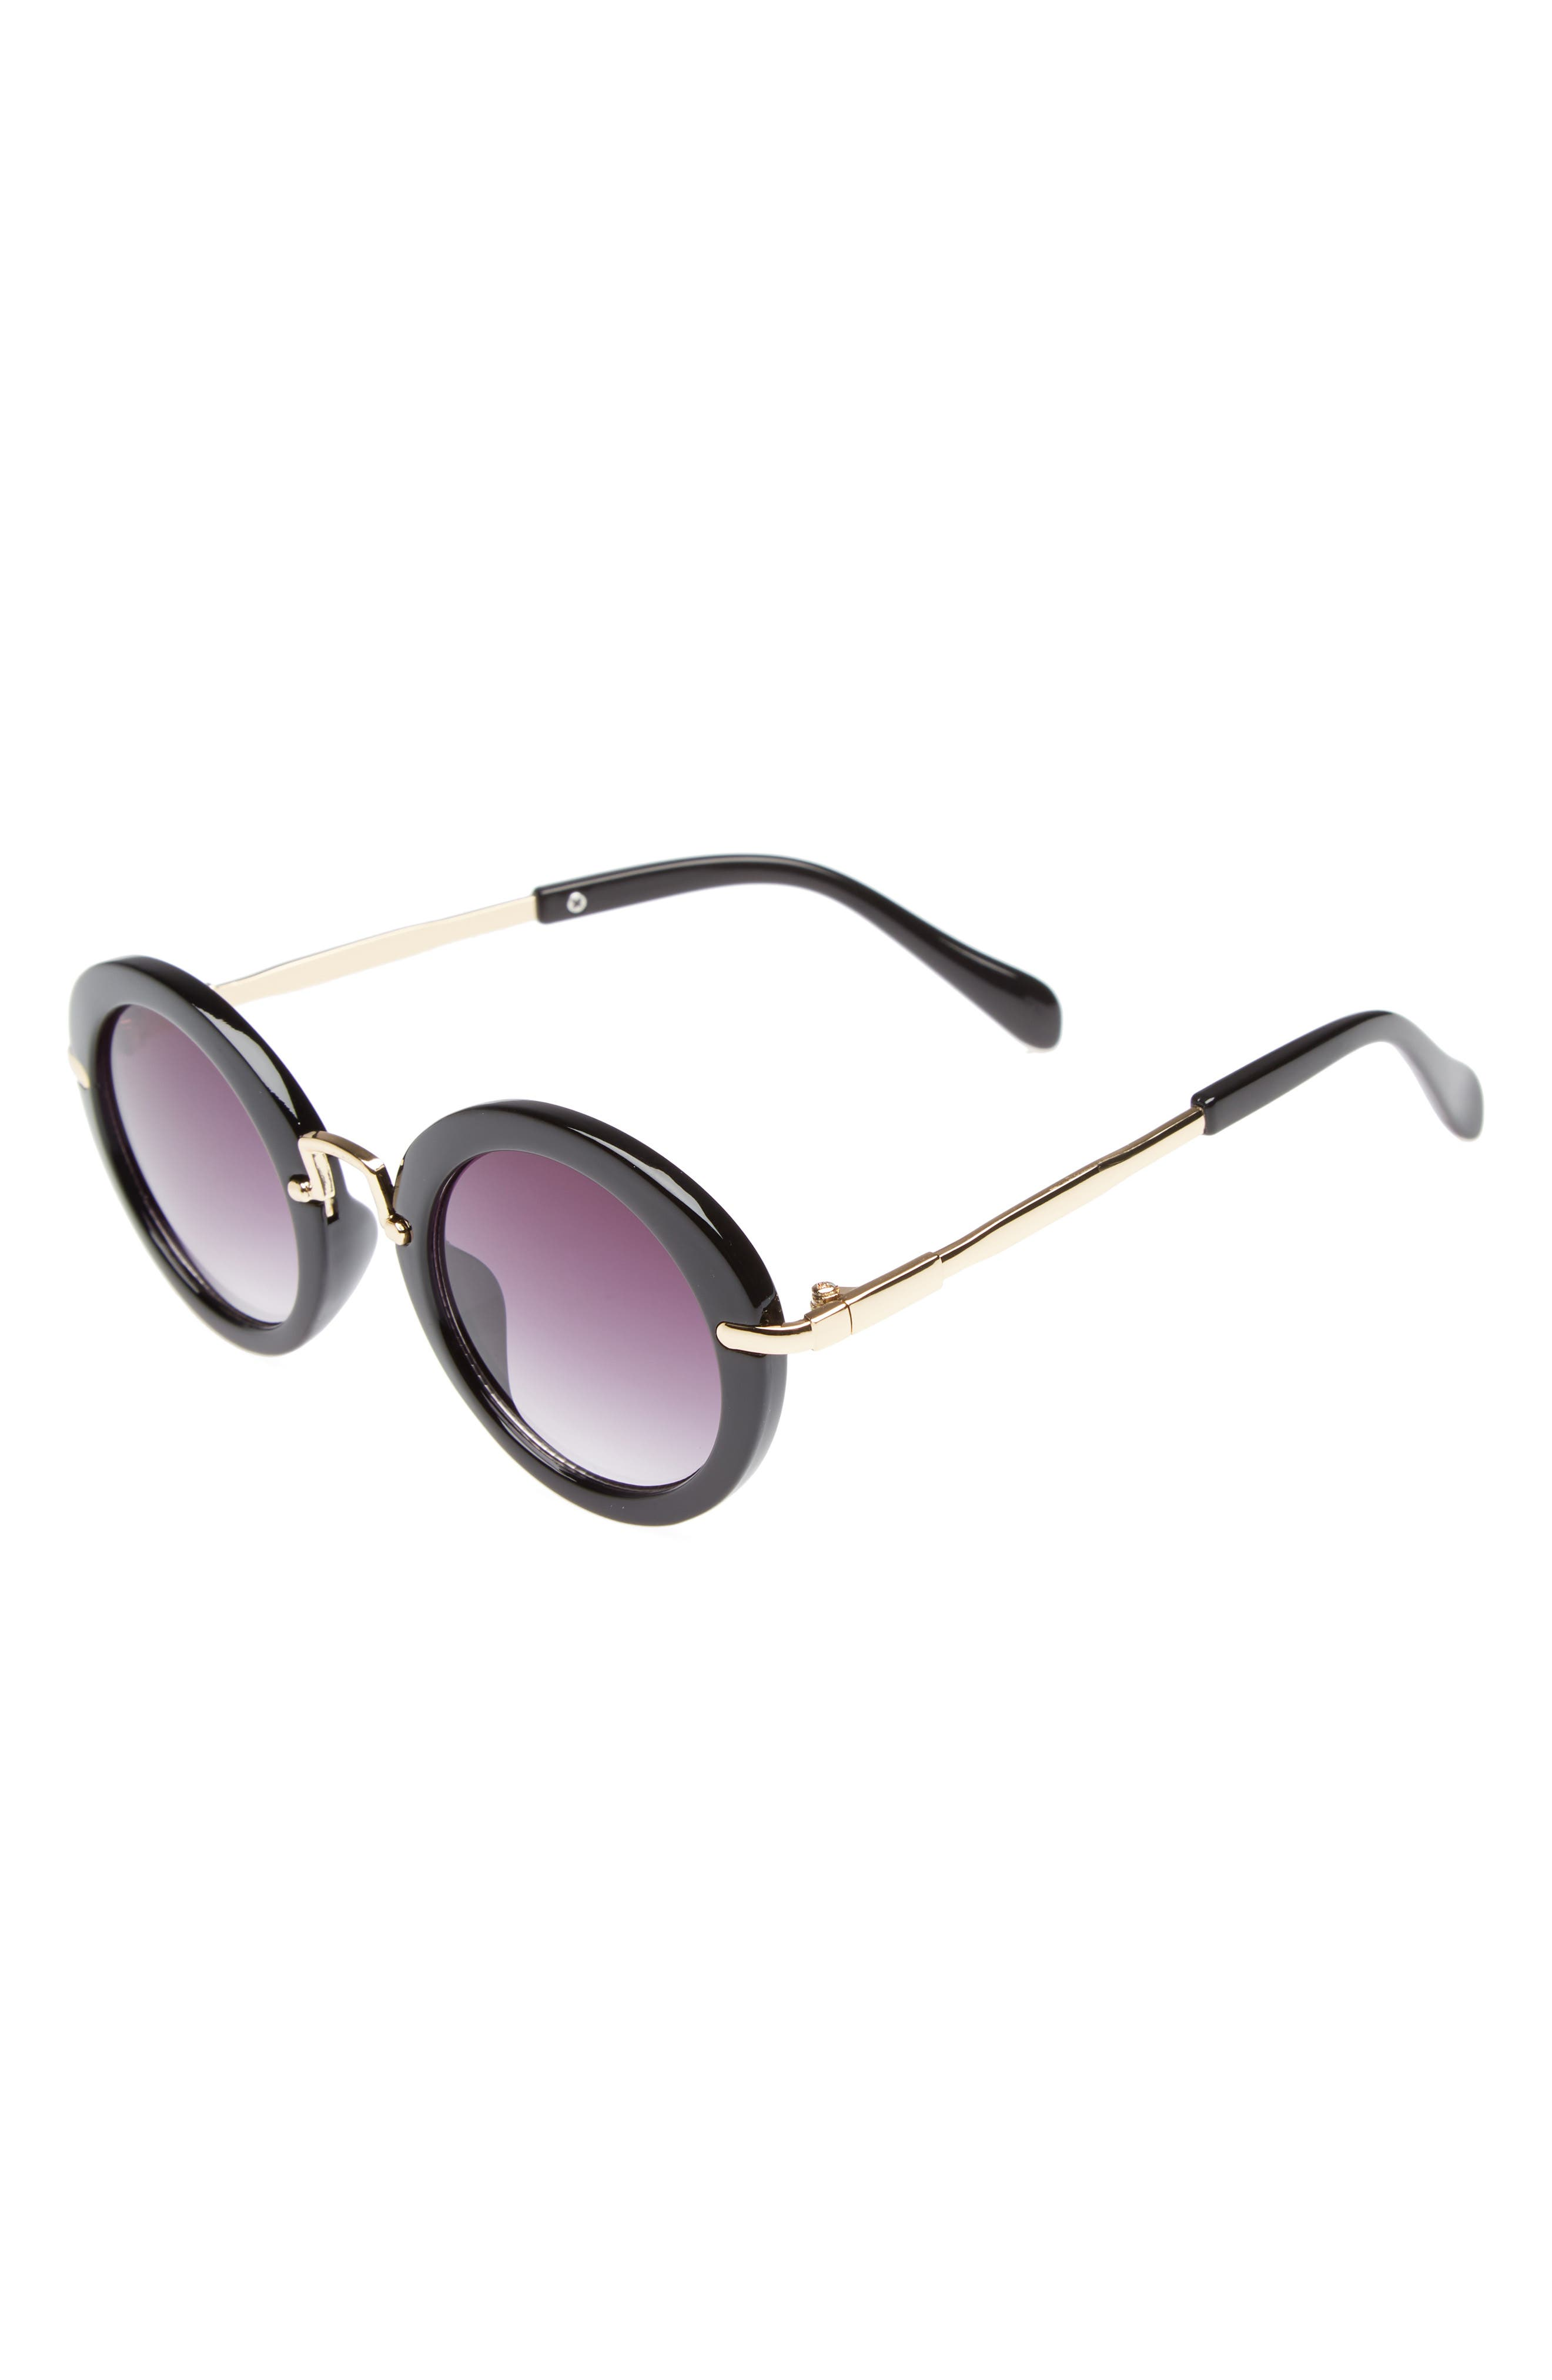 Round Sunglasses,                         Main,                         color, Black/ Gold